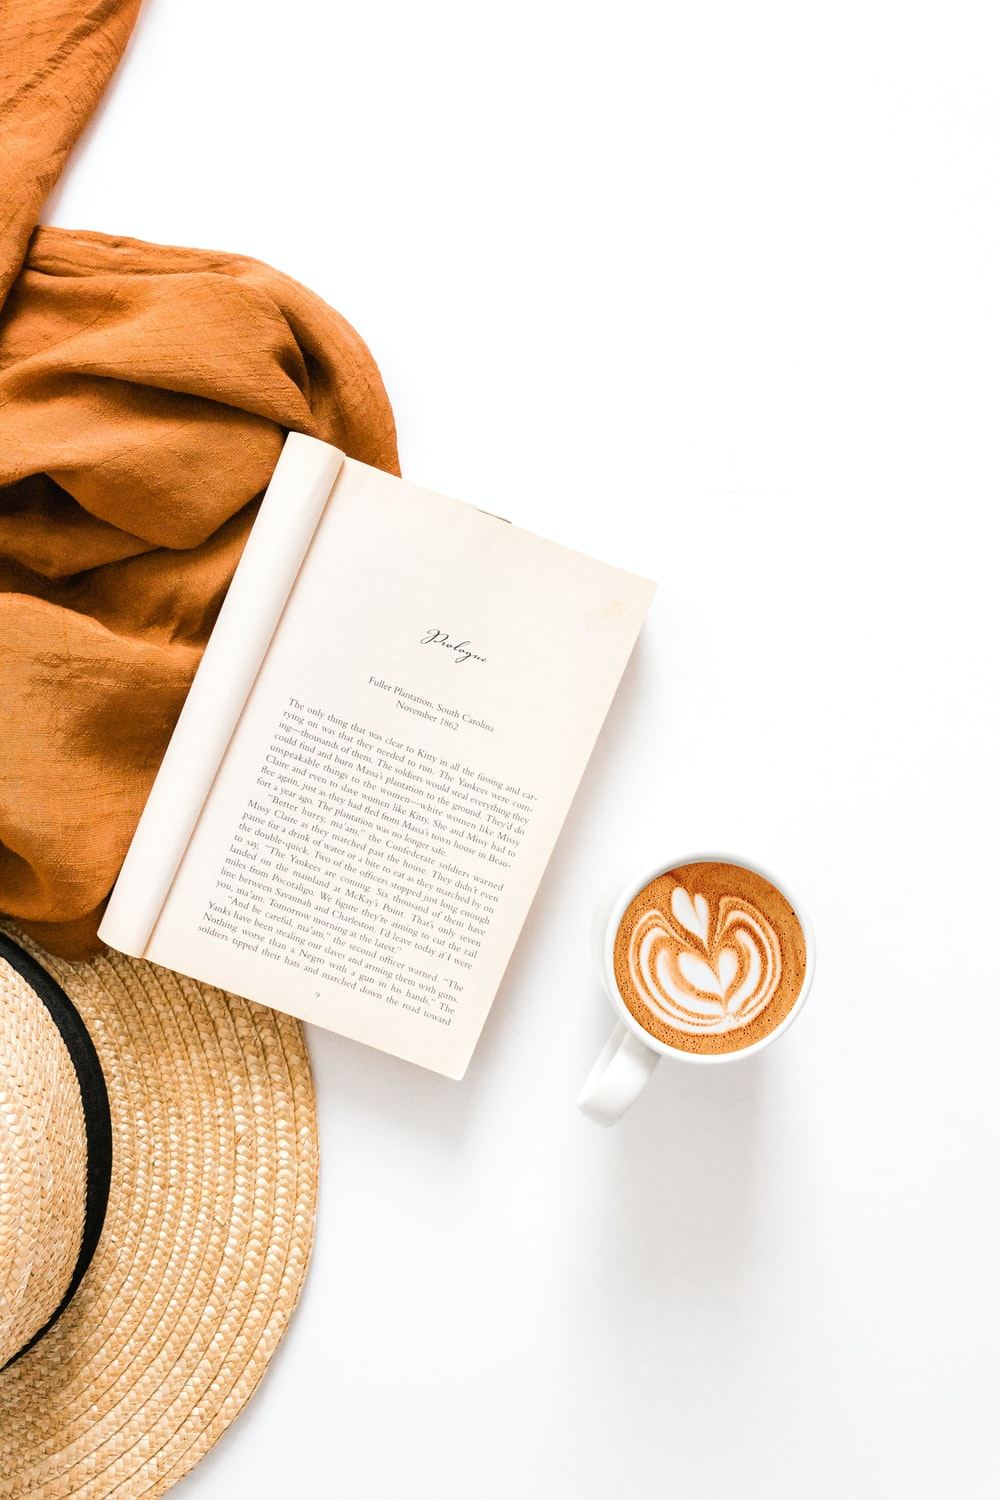 printed book and coffee cup